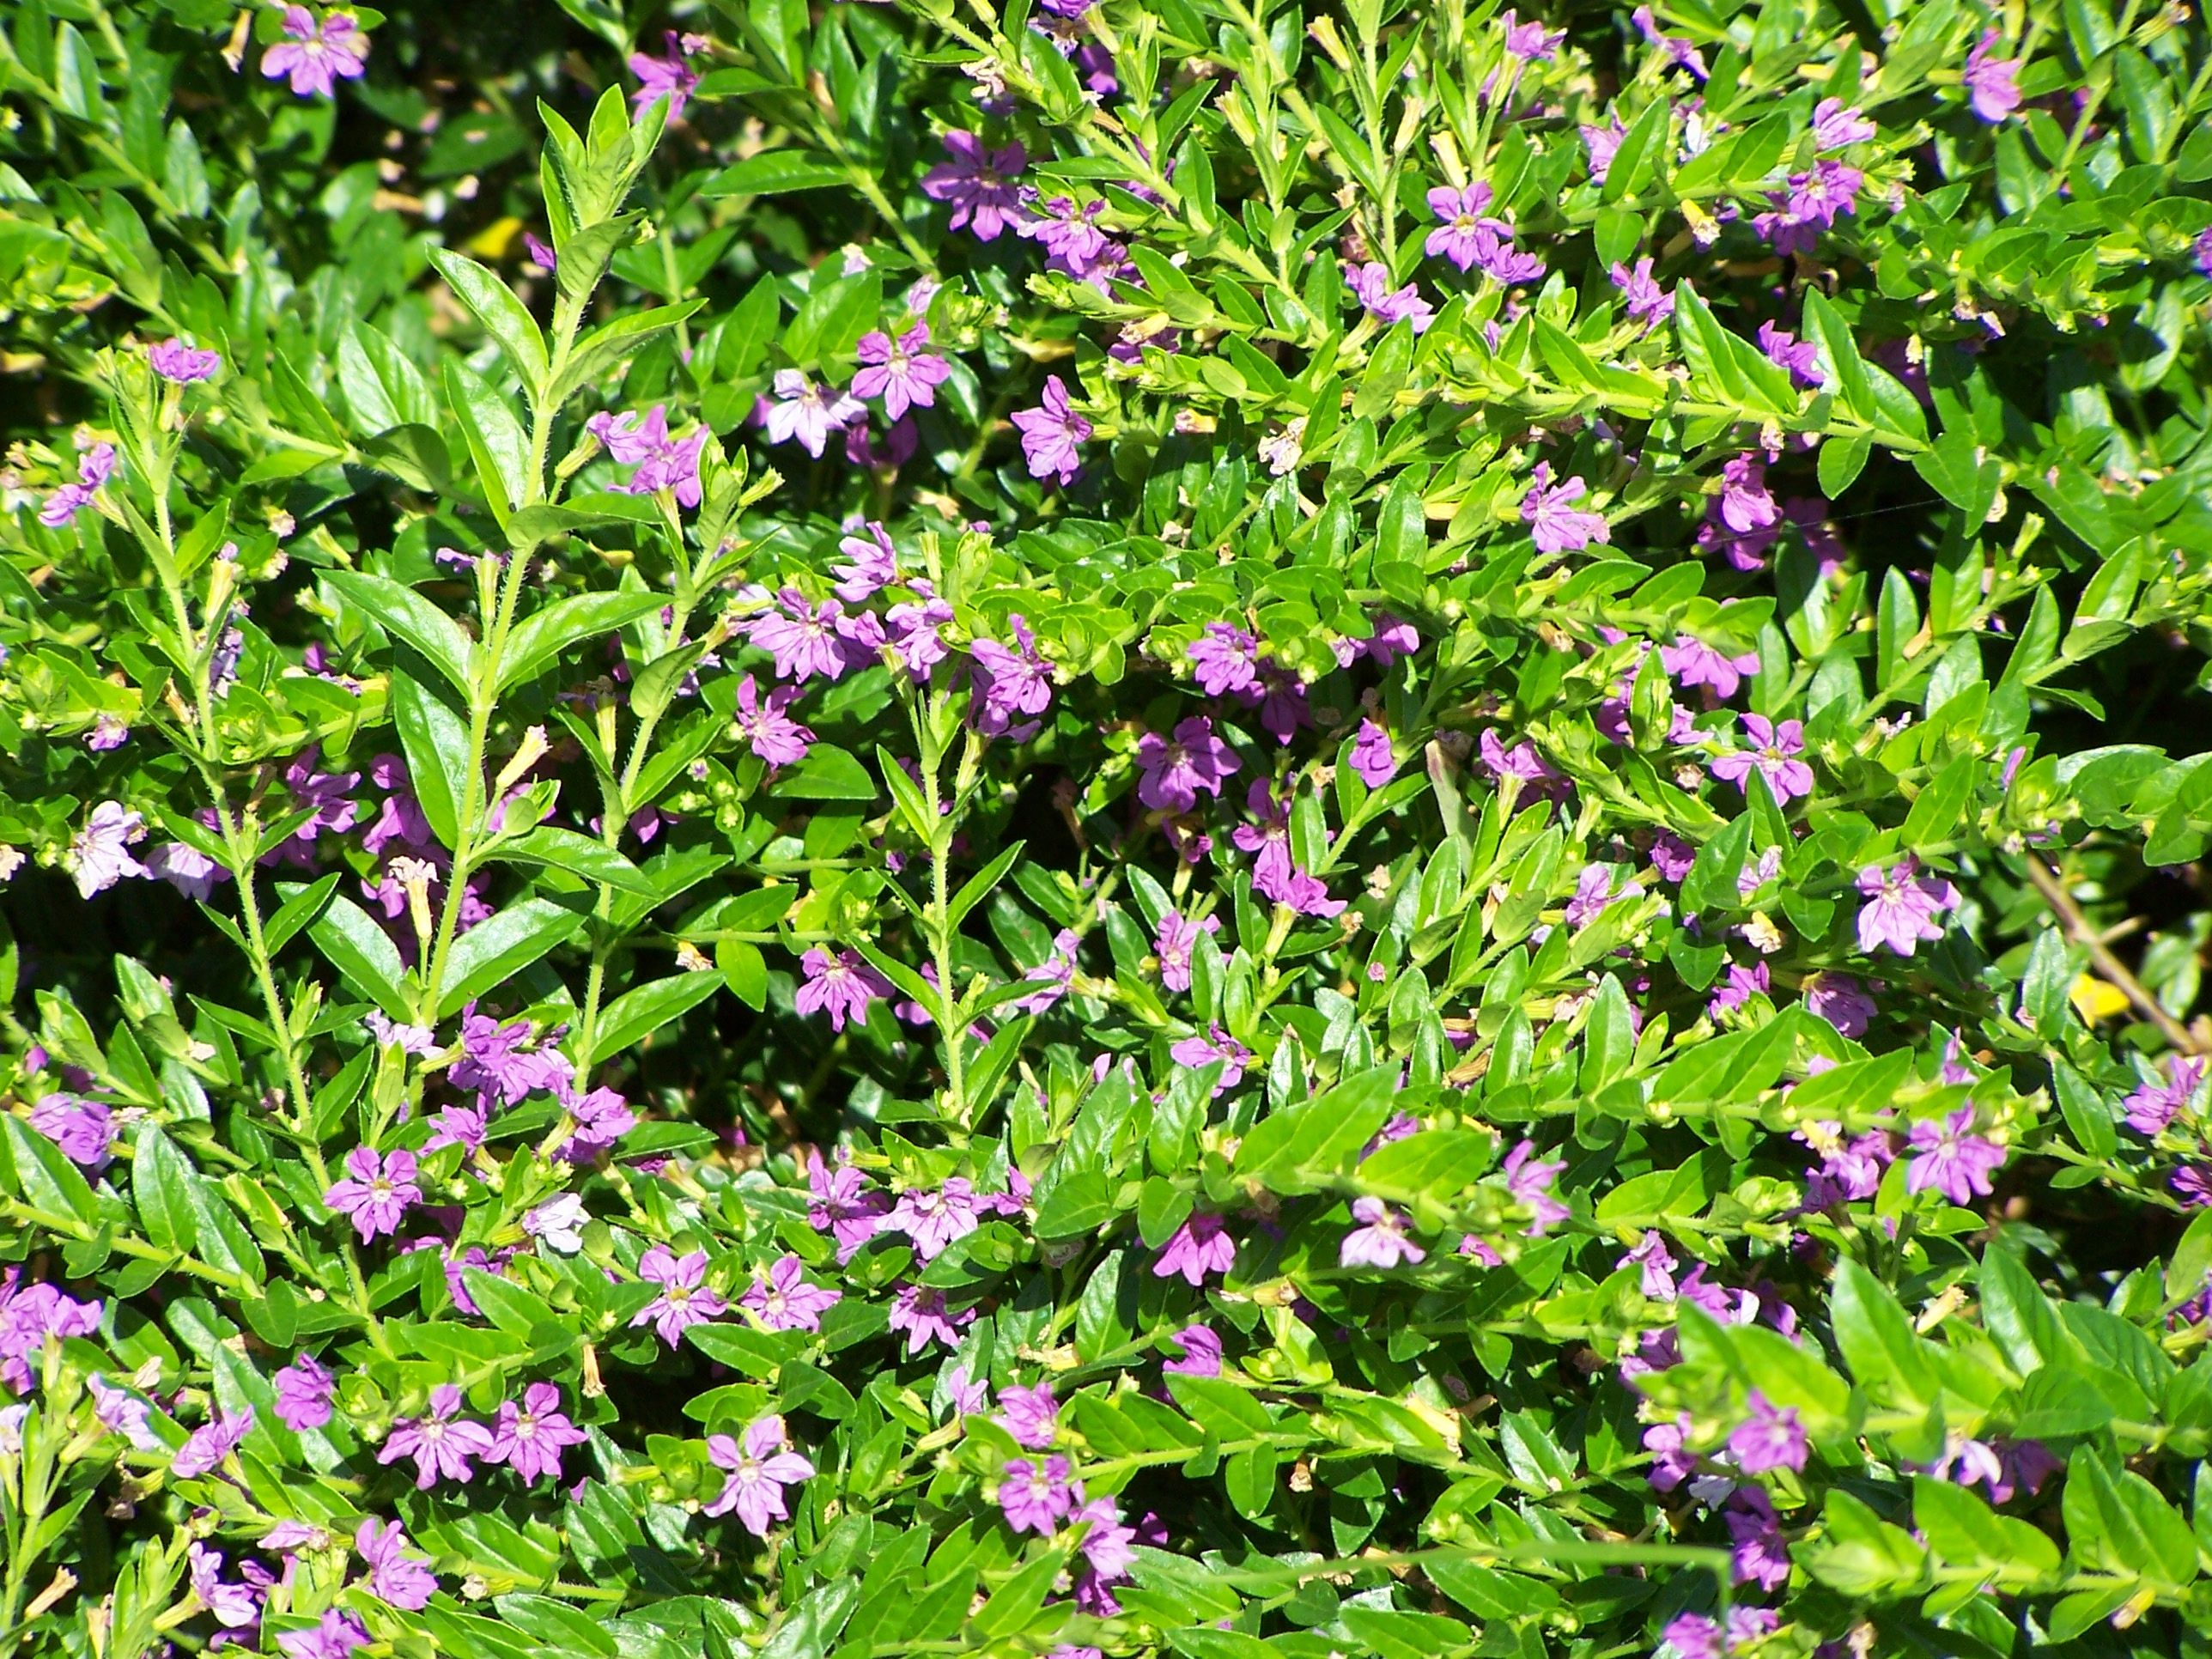 Mexican Heather Is A Good Plant For Containers Or In A Row At The Front Of A Garden Bed Cool Plants Container Plants Annual Color